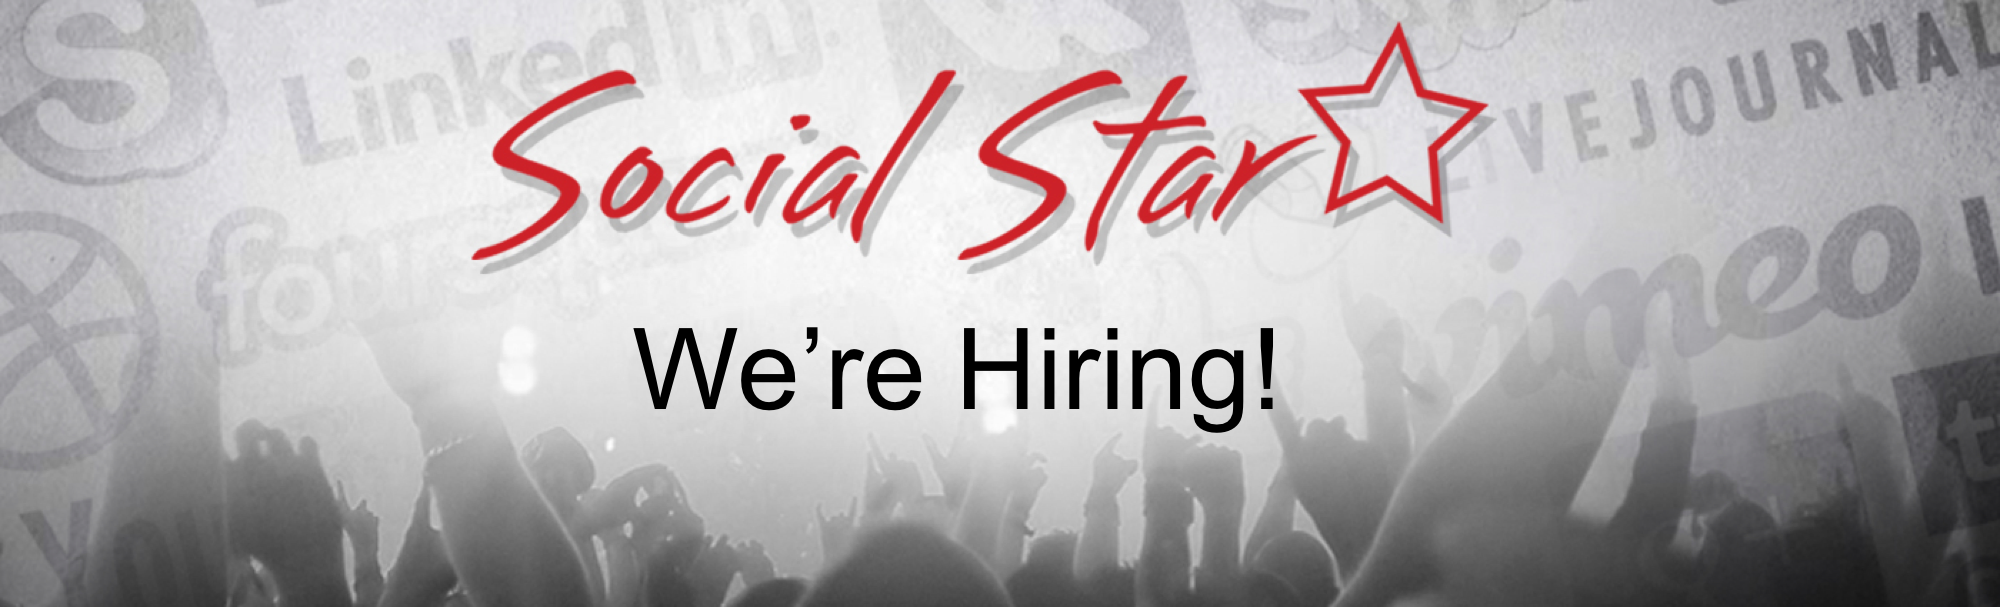 Based in Melbourne CBD, this role is for a junior client manager who loves getting shit done, improving processes and helping clients to grow their brand.   About Us...   You would be working for  Social Star with all of our awesome  clients . We are very motivated to make a difference in people's lives and it needs to be one of your passions too.  We genuinely love what we do and we want someone who has the same high value on work and serving clients. It would be handy if you like Friday drinks, going to business events, hanging with our clients, meeting new people and good coffee.   About the role...   The role is pretty flexible. Work from the office, work from home at times, it's not about time, it's about outcomes. We want you to work with our awesome Personal Brand Consultants to help them build our clients brands. You will take responsibility for coordinating the behind the scenes elements of our e-ttraction process.  We will teach you about branding, social media, sales, marketing, Xero, Squarespace, HubSpot, Go Daddy, LinkedIn, podcasting, blogging and more. You will leave a social star! Many of our staff go on to run their own agencies.  What we need is someone dedicated, reliable and prepared to go the extra mile for the business and our clients. From overseas and need a Visa, sure we can discuss. Haven't much experience, no problem. Don't really want to be responsible for your efforts and work hard - big problem.  Full training is provided and we will invest in you if you invest in us.   How to get hired...   Your measure will be based on your attitude and results. This will be measured in how delighted our clients are with you.  Salary will be on a contract with payment per performance. We want a self-starter that will be able to learn, follow and improve the current processes. You will be responsible for this area of the business.   Next steps...   To see what we are like check our  Social Star website , Andrew Ford's website and  my podcast for a feel